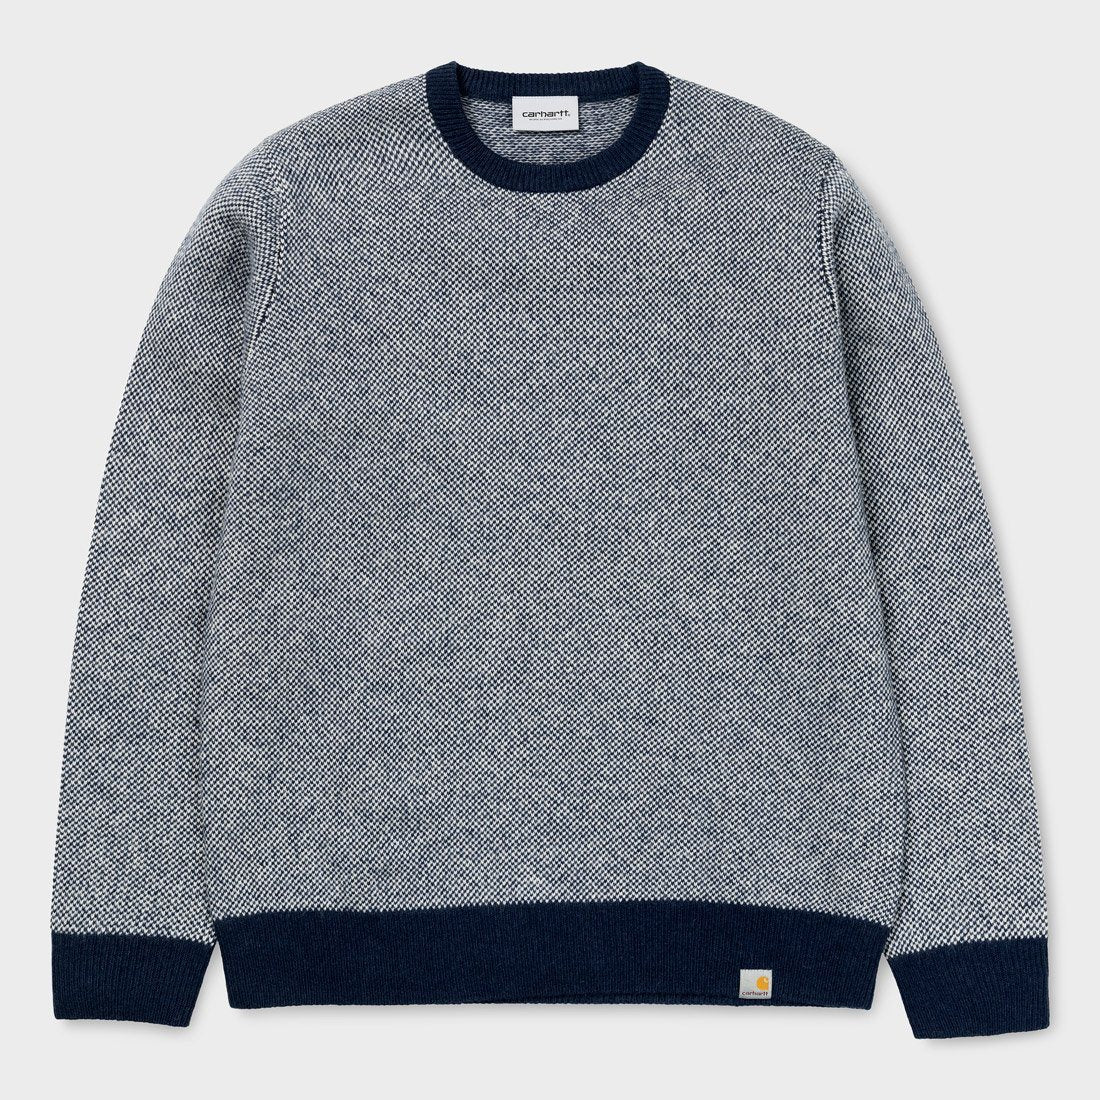 Carhartt WIP Spooner Sweater Dark Navy/Snow